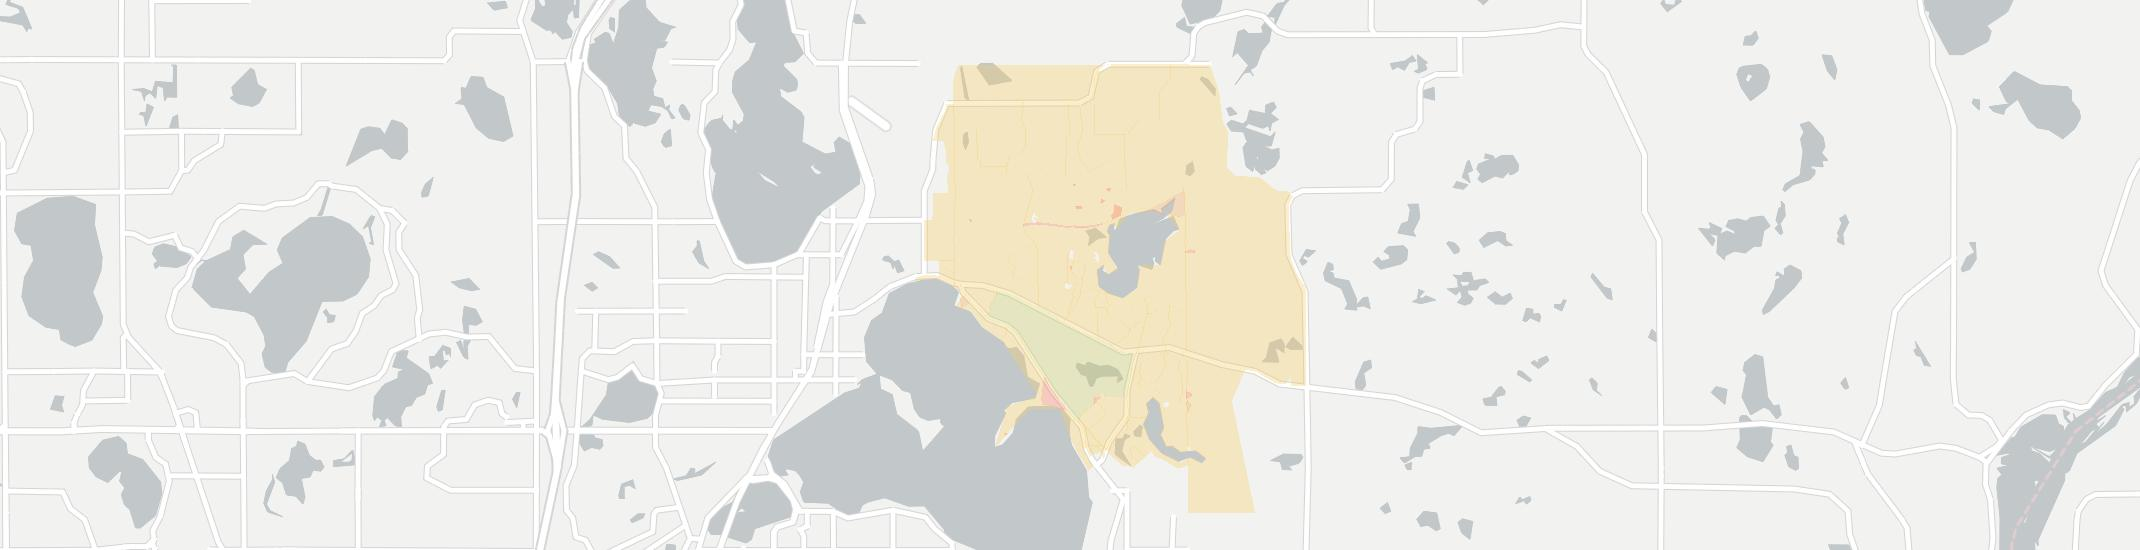 Dellwood Internet Competition Map. Click for interactive map.